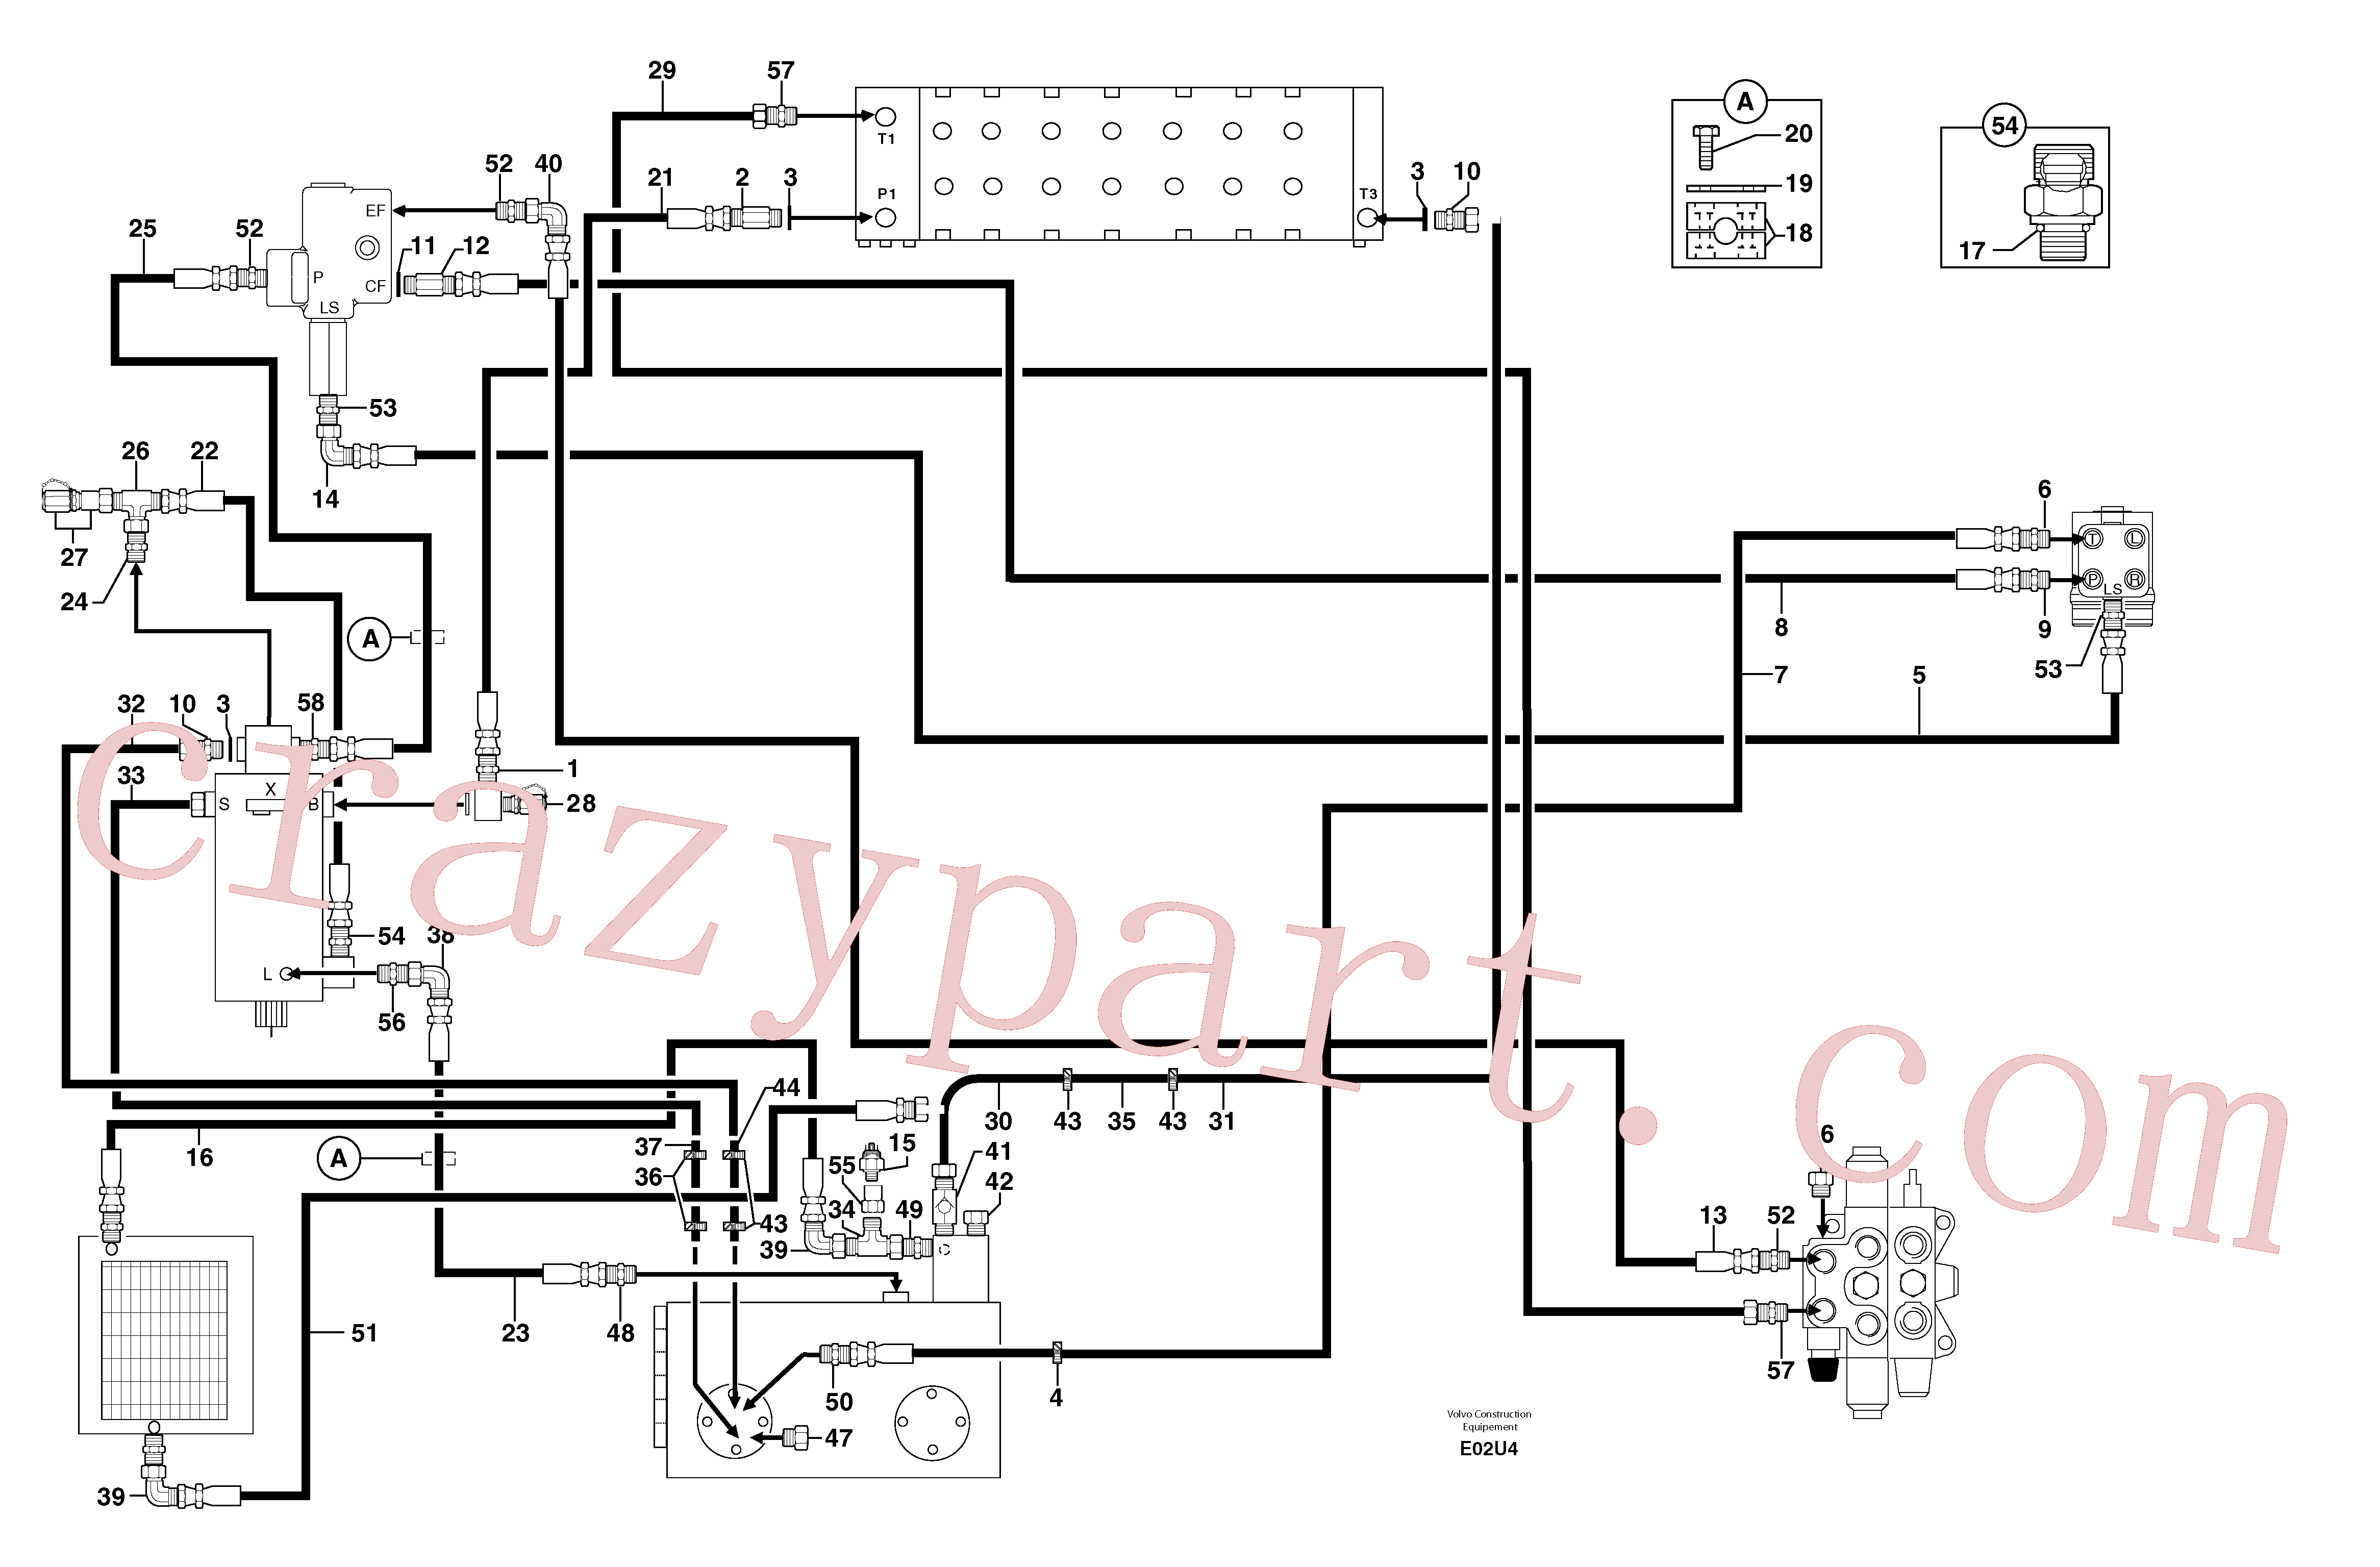 PJ4750577 for Volvo Attachments supply and return circuit(E02U4 assembly)